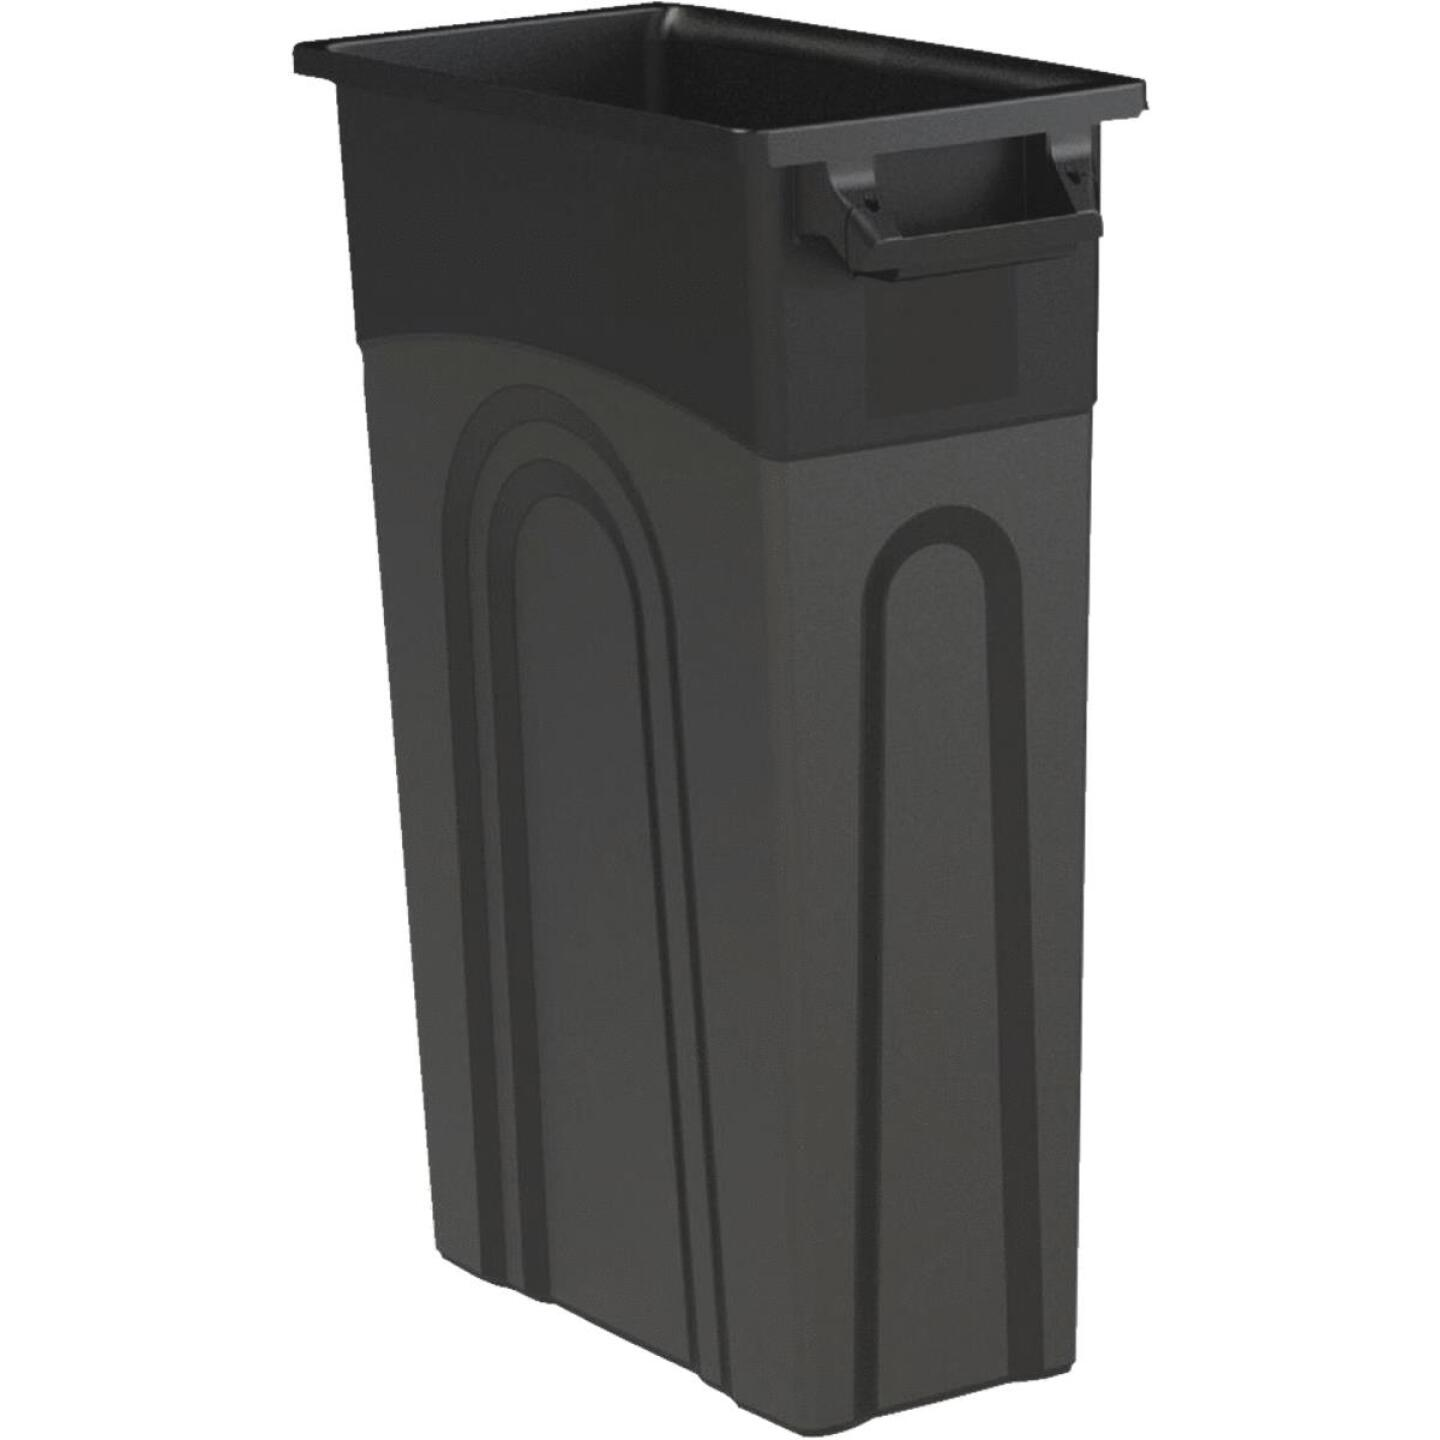 United Solutions 23 Gal. Black Trash Can Image 1